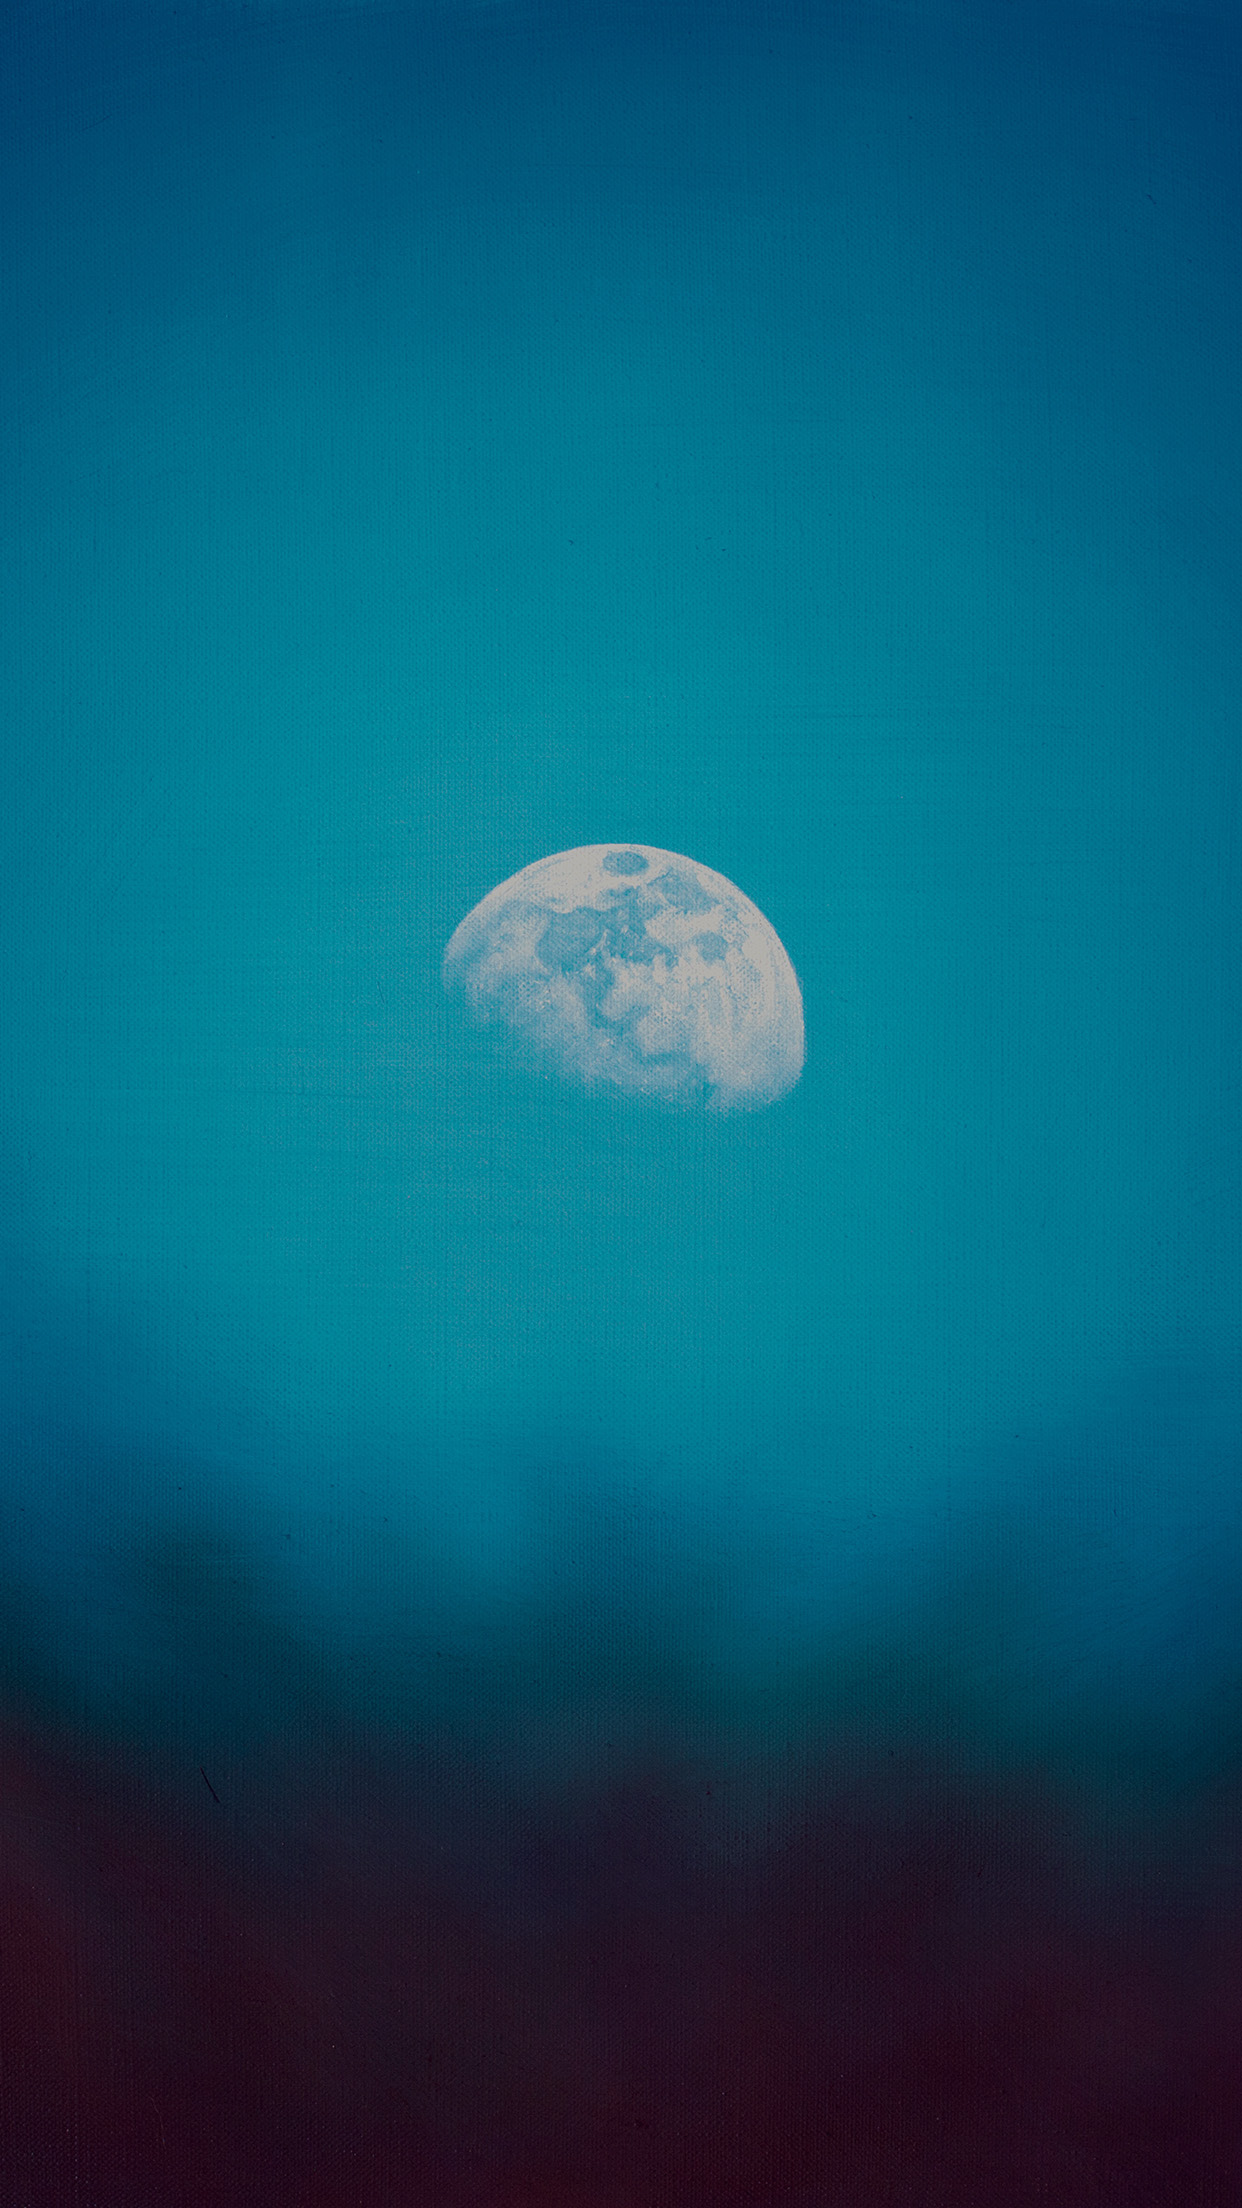 Moon Rise Day Nature Blue Dark Night Green Android   Blue Green 1242x2208